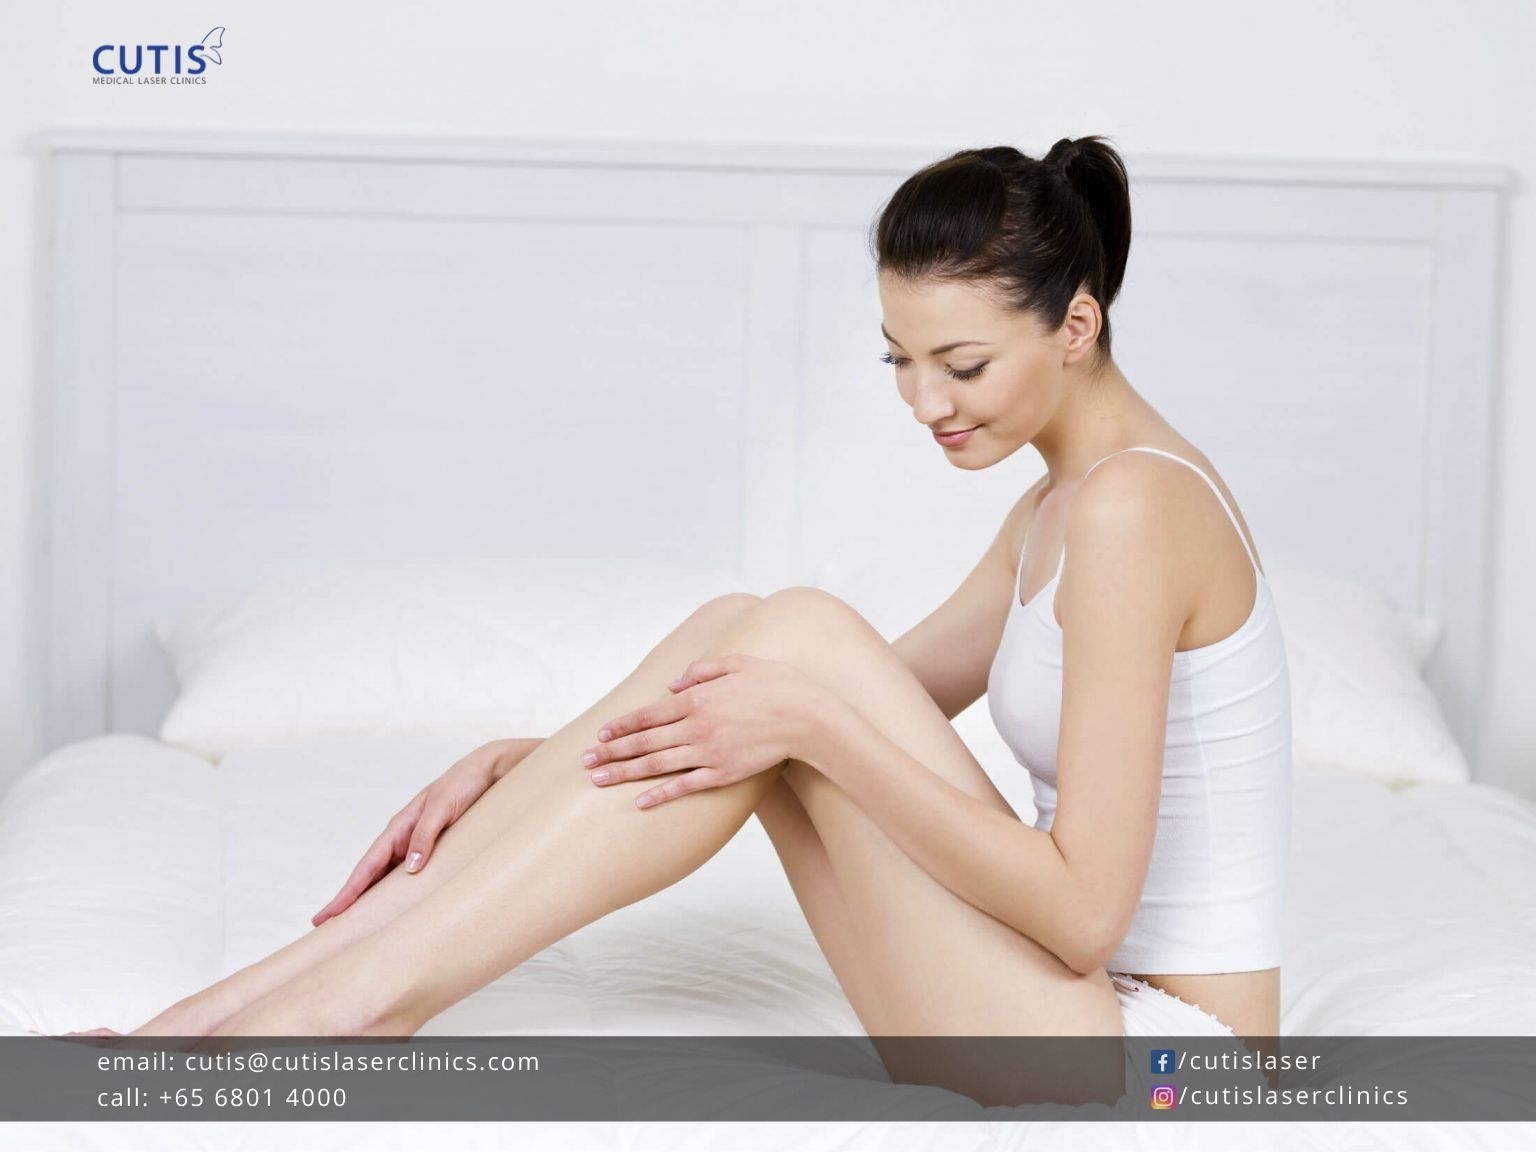 Laser Hair Removal: 5 Reasons Why it is Cost-Effective